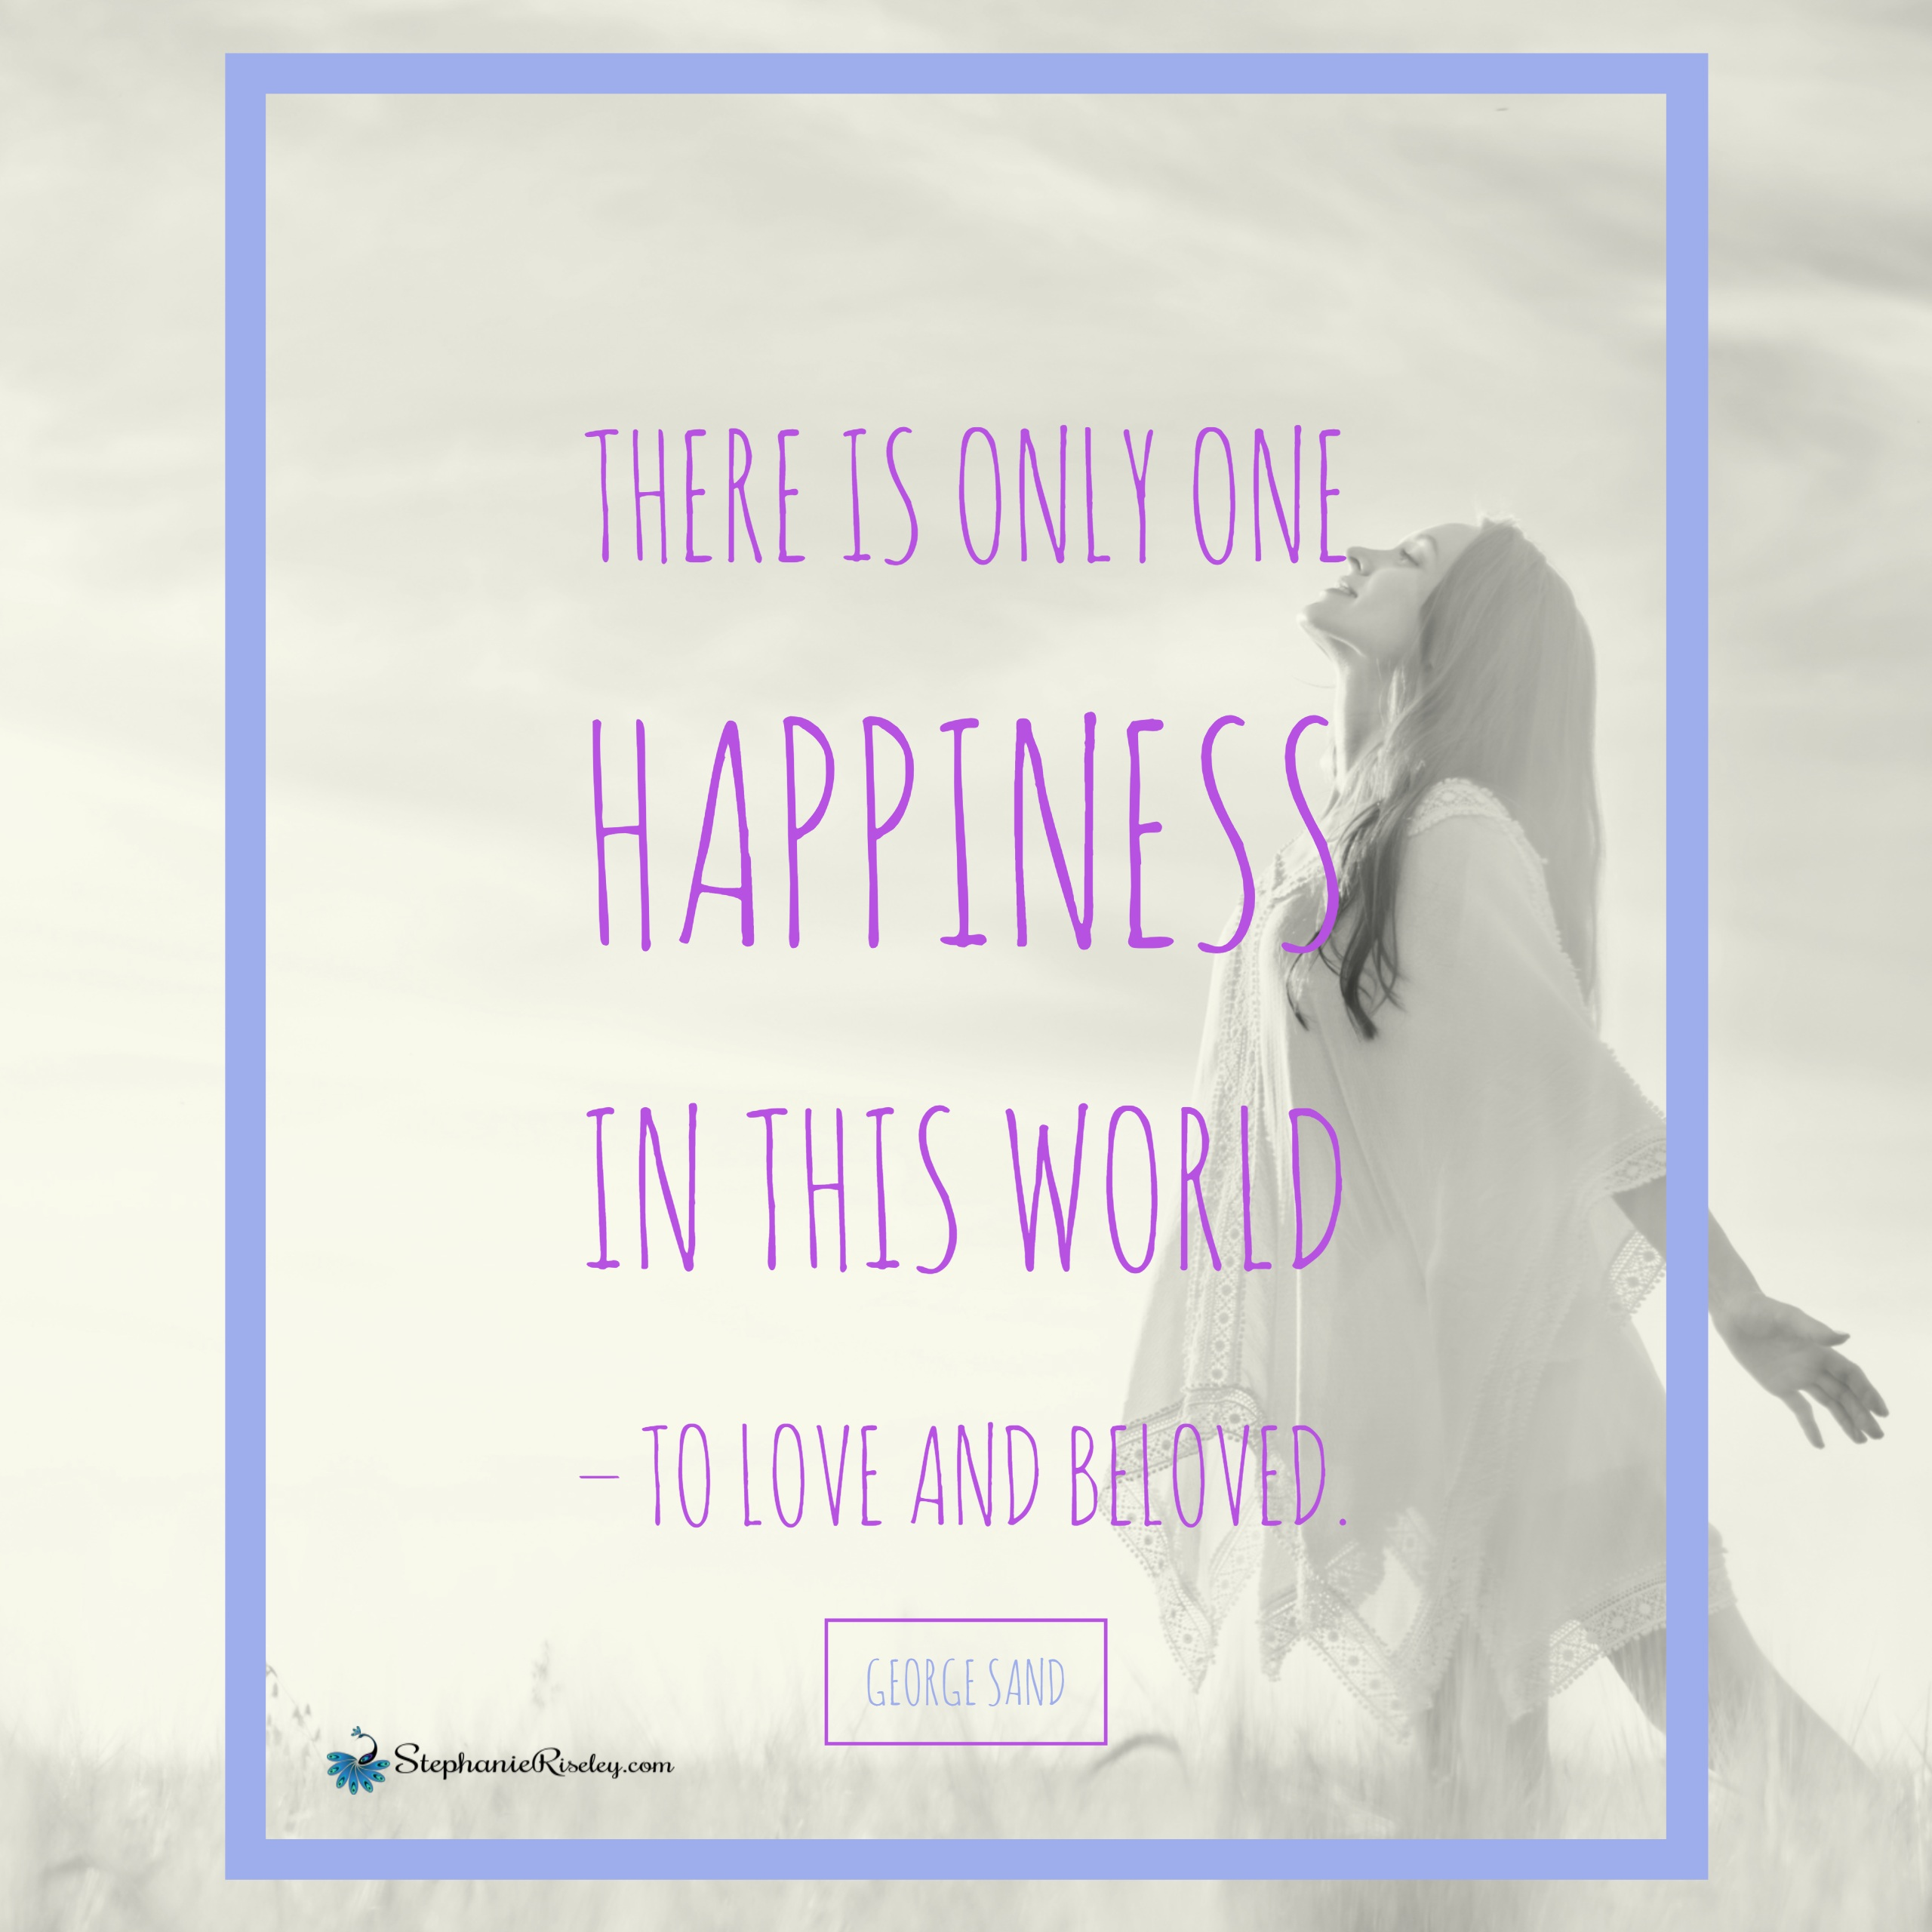 There is only one happiness